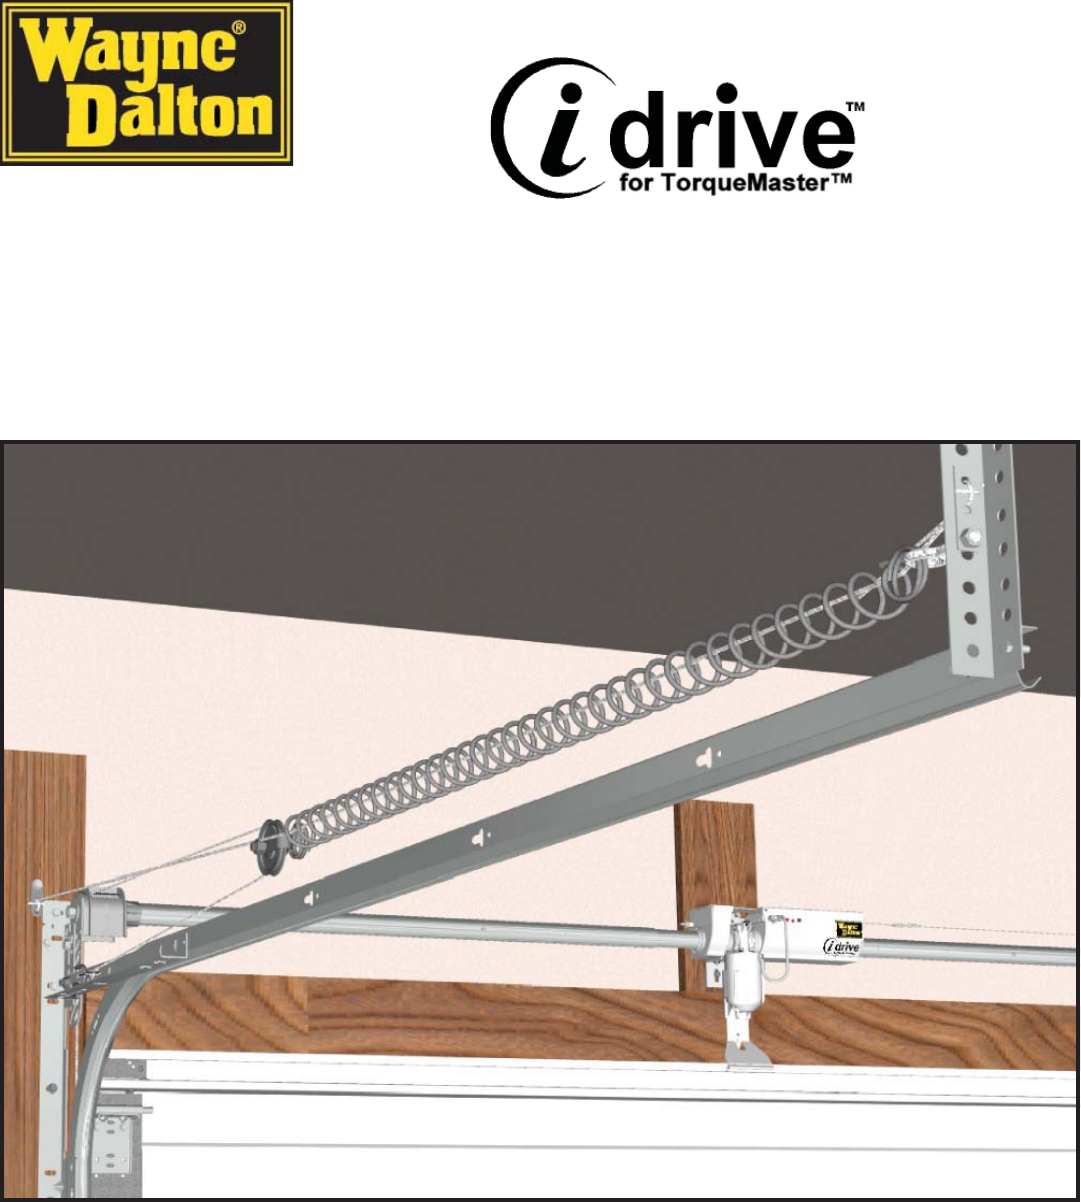 Wayne Dalton Garage Door Opener 3982 User Guide Manualsonline